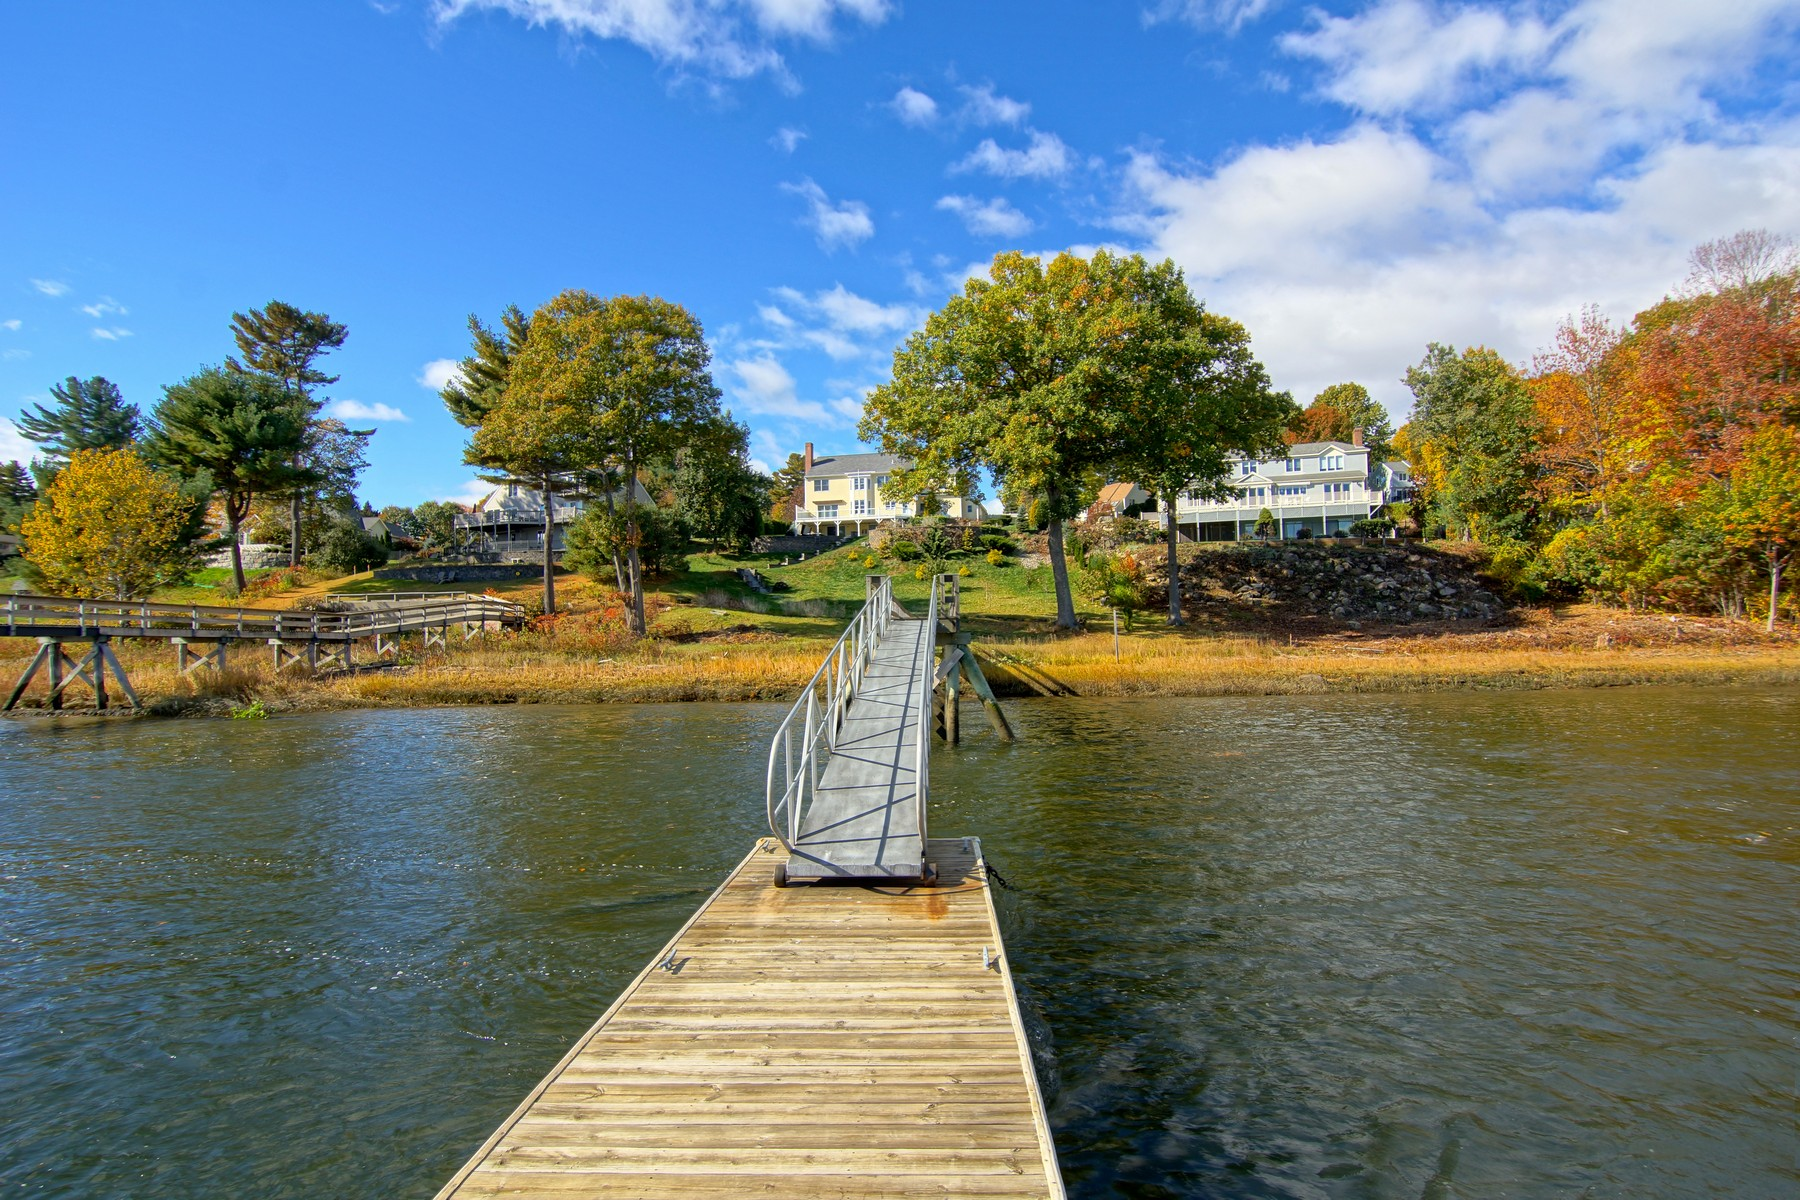 Single Family Home for Sale at Direct Waterfront Residence with Deep-water Dock at Landing Way 13 Landing Way Dover, New Hampshire, 03820 United States